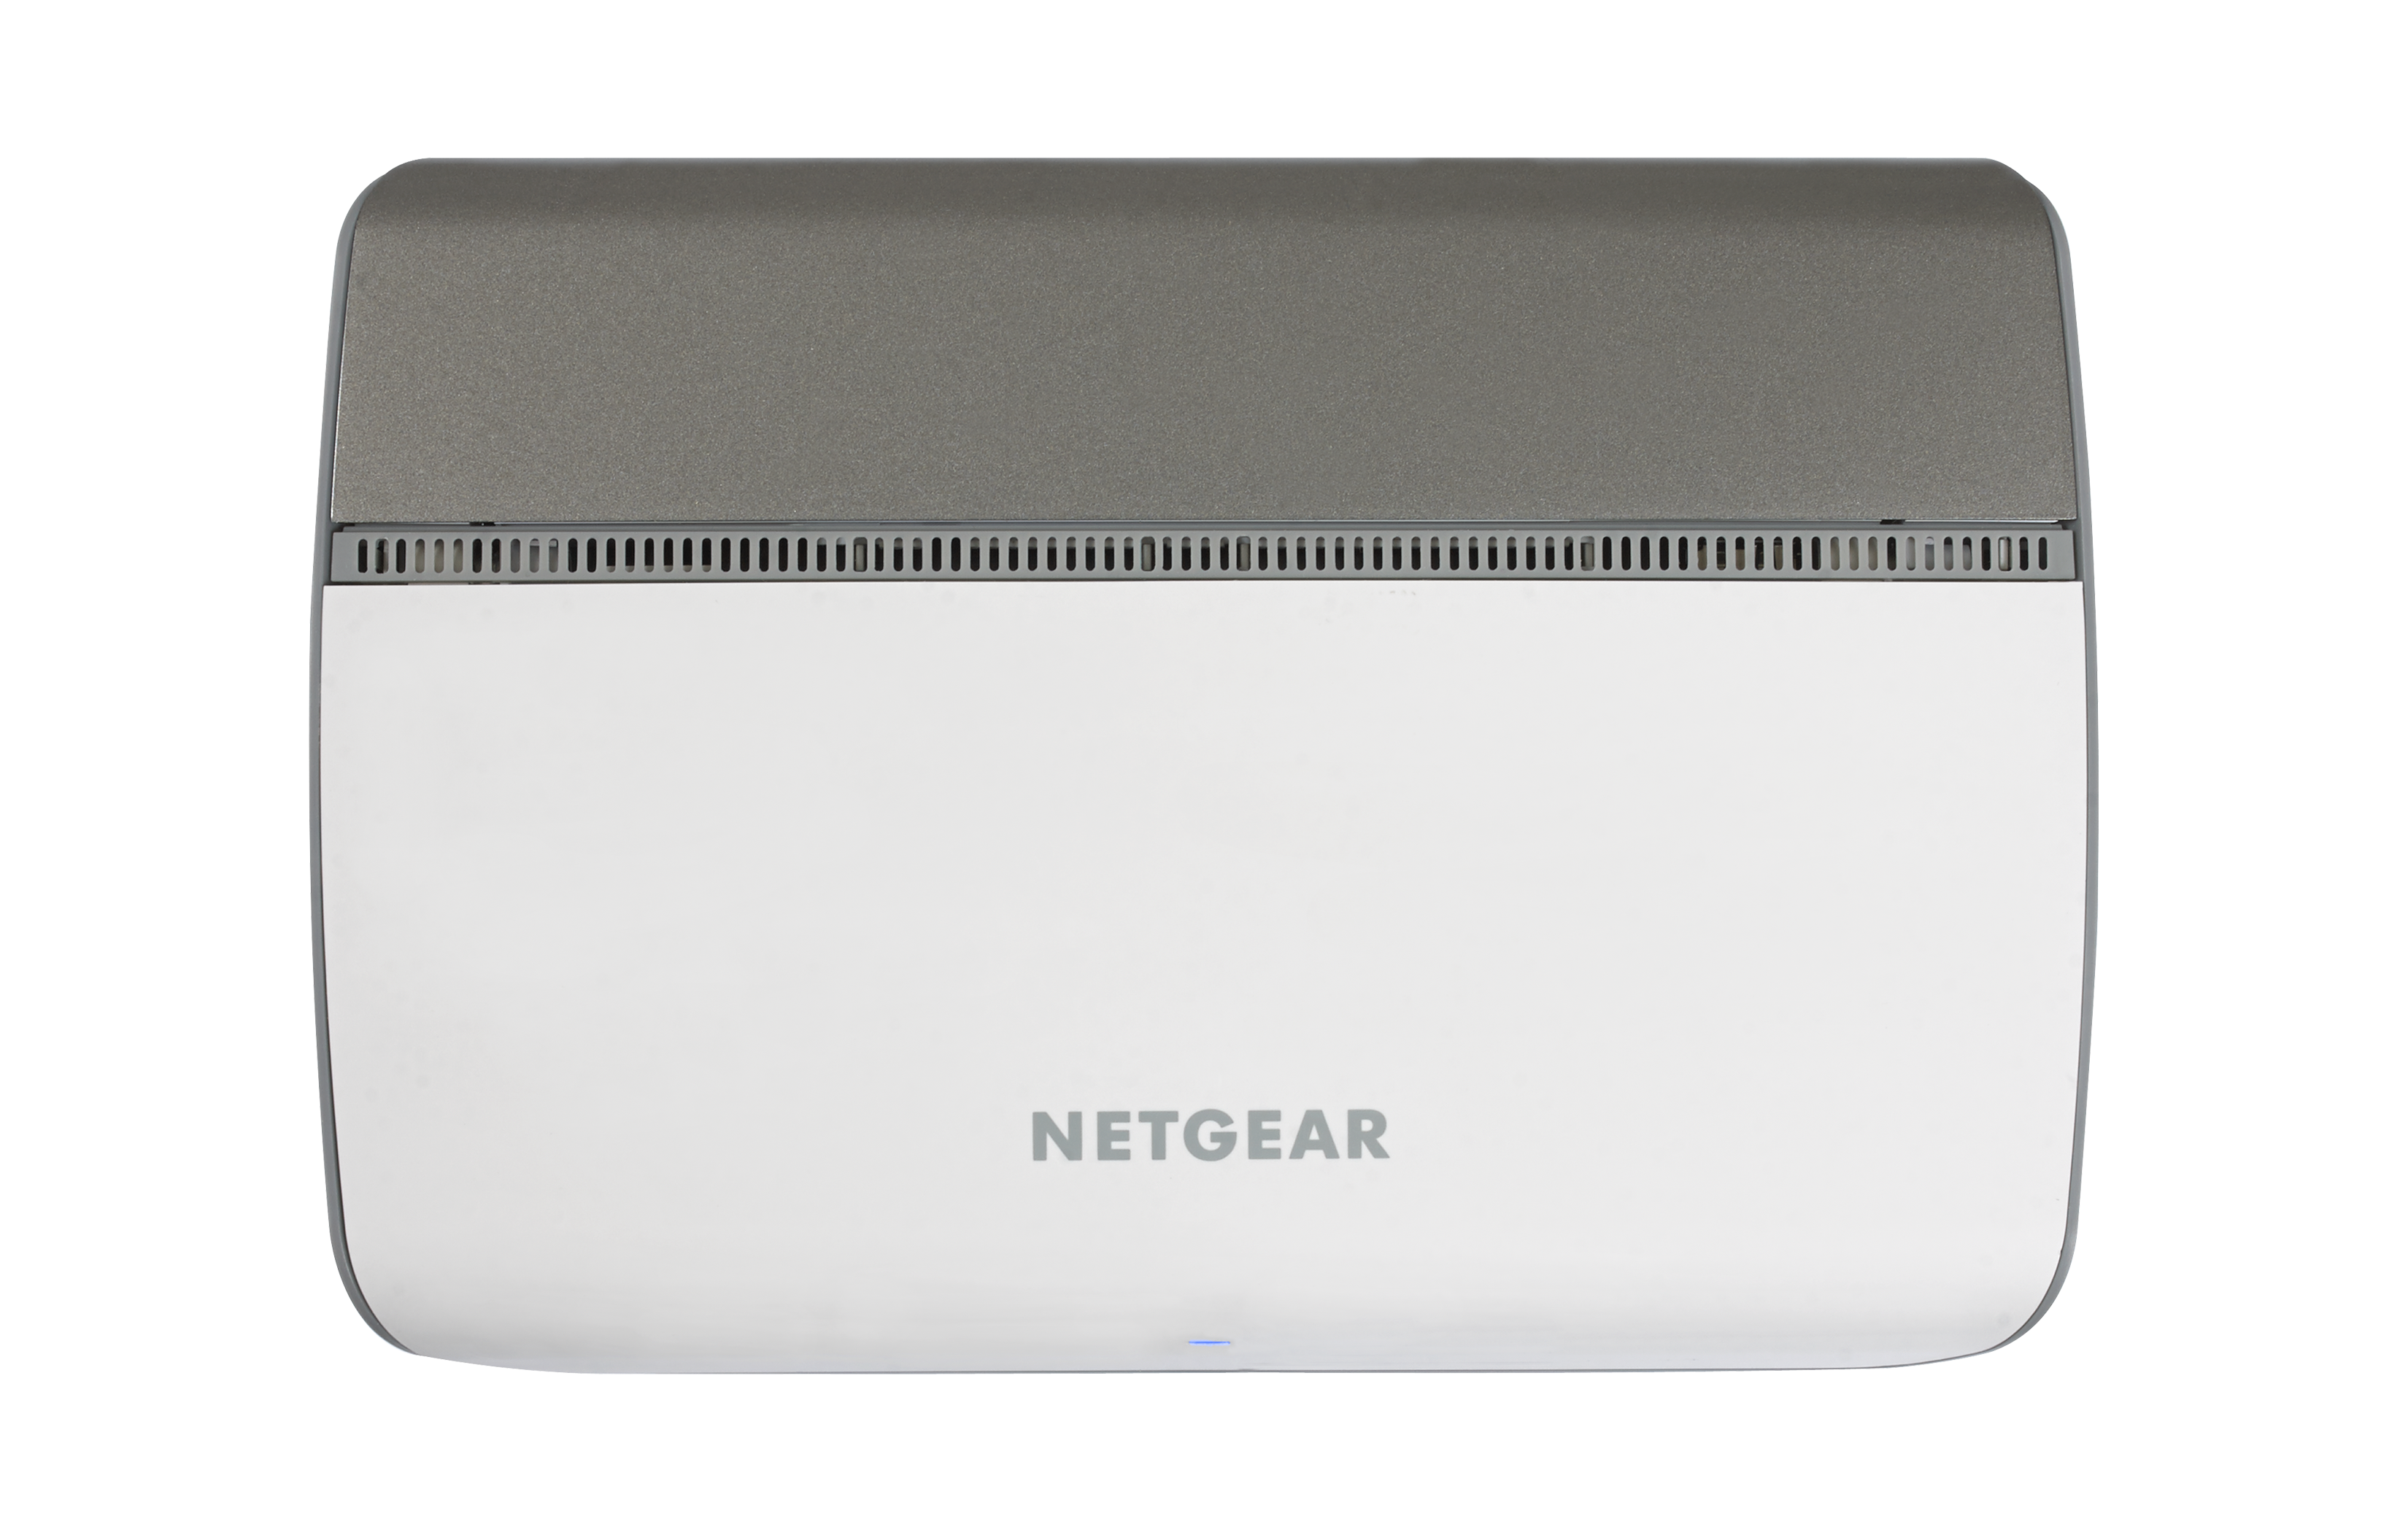 GS908 | Lifestyle Switches | Switches | Networking | Home | NETGEAR